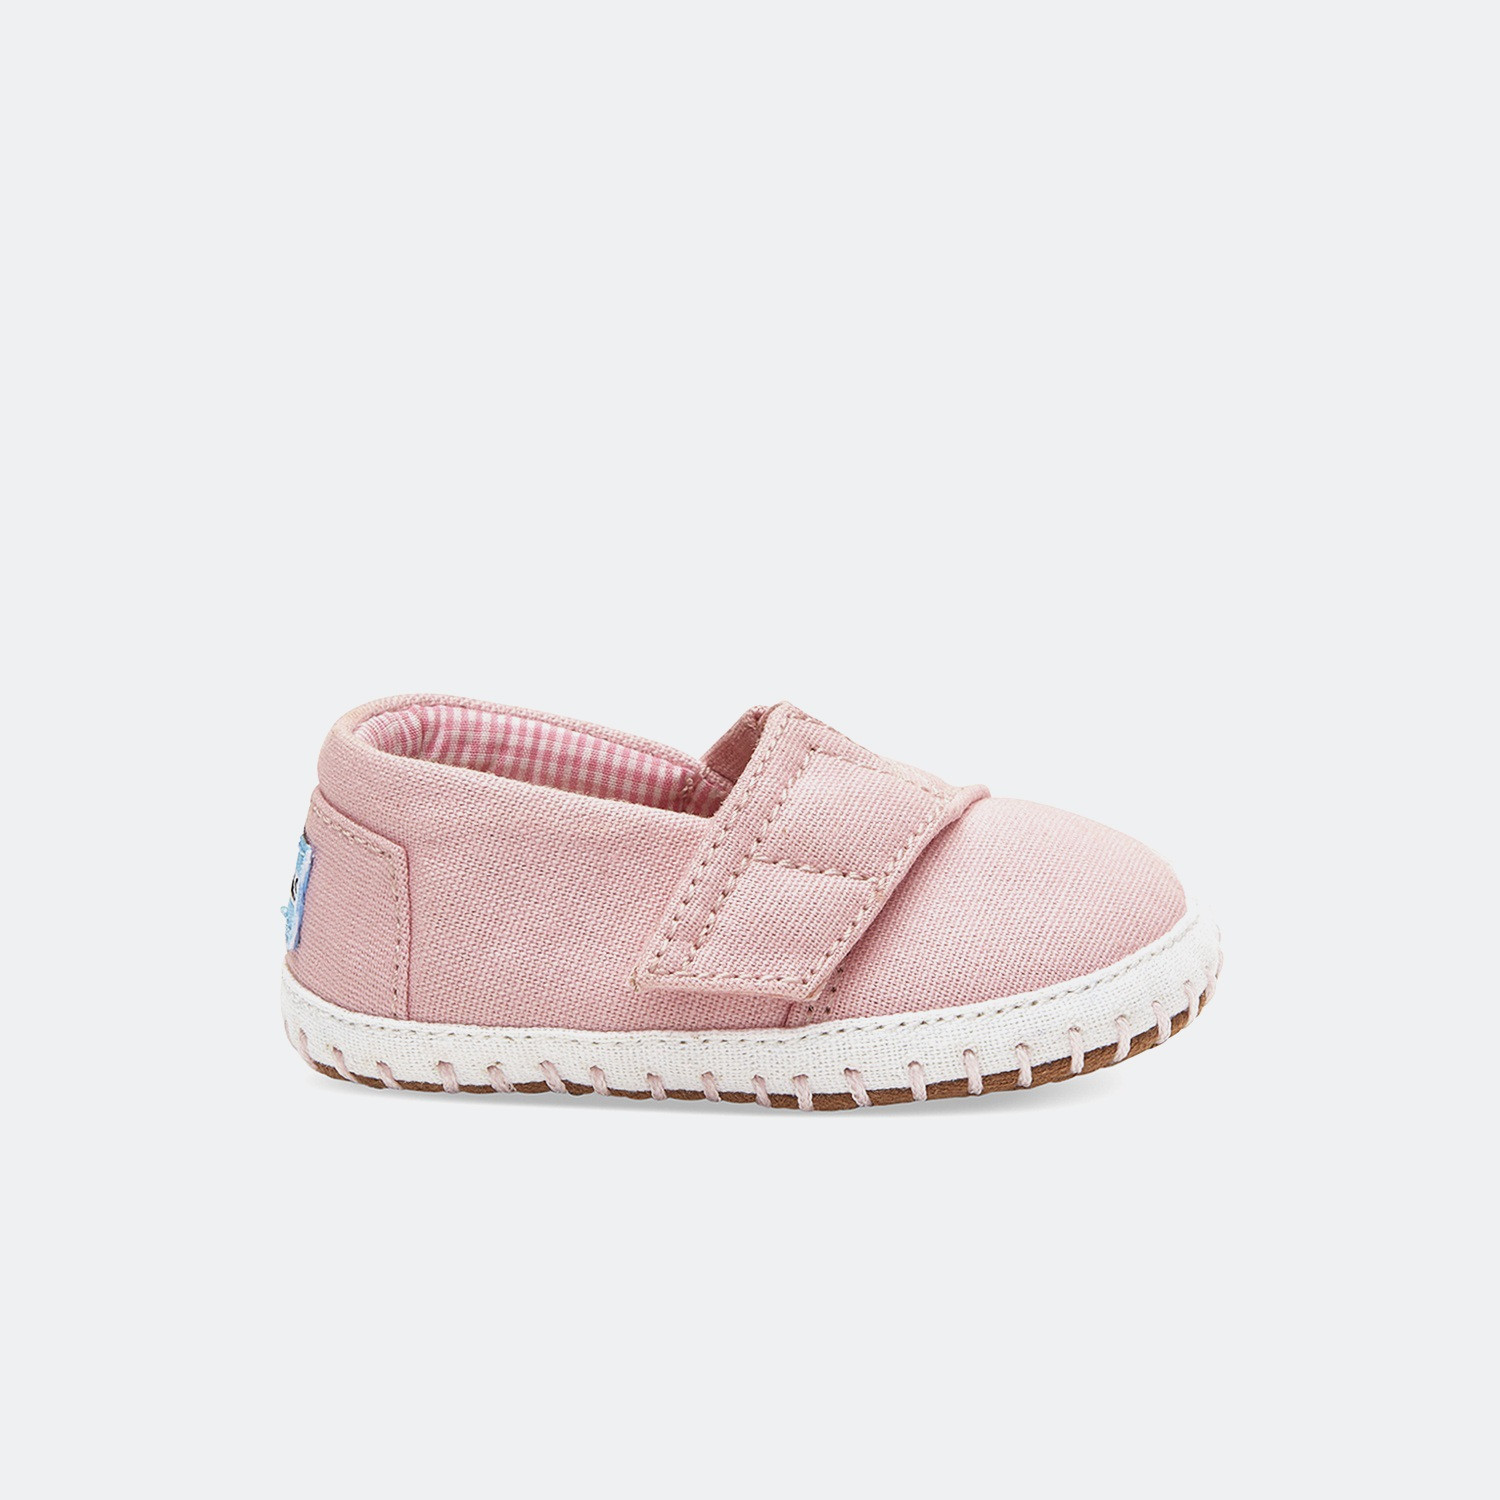 TOMS PINK CANVAS TN CRIBALP LAY